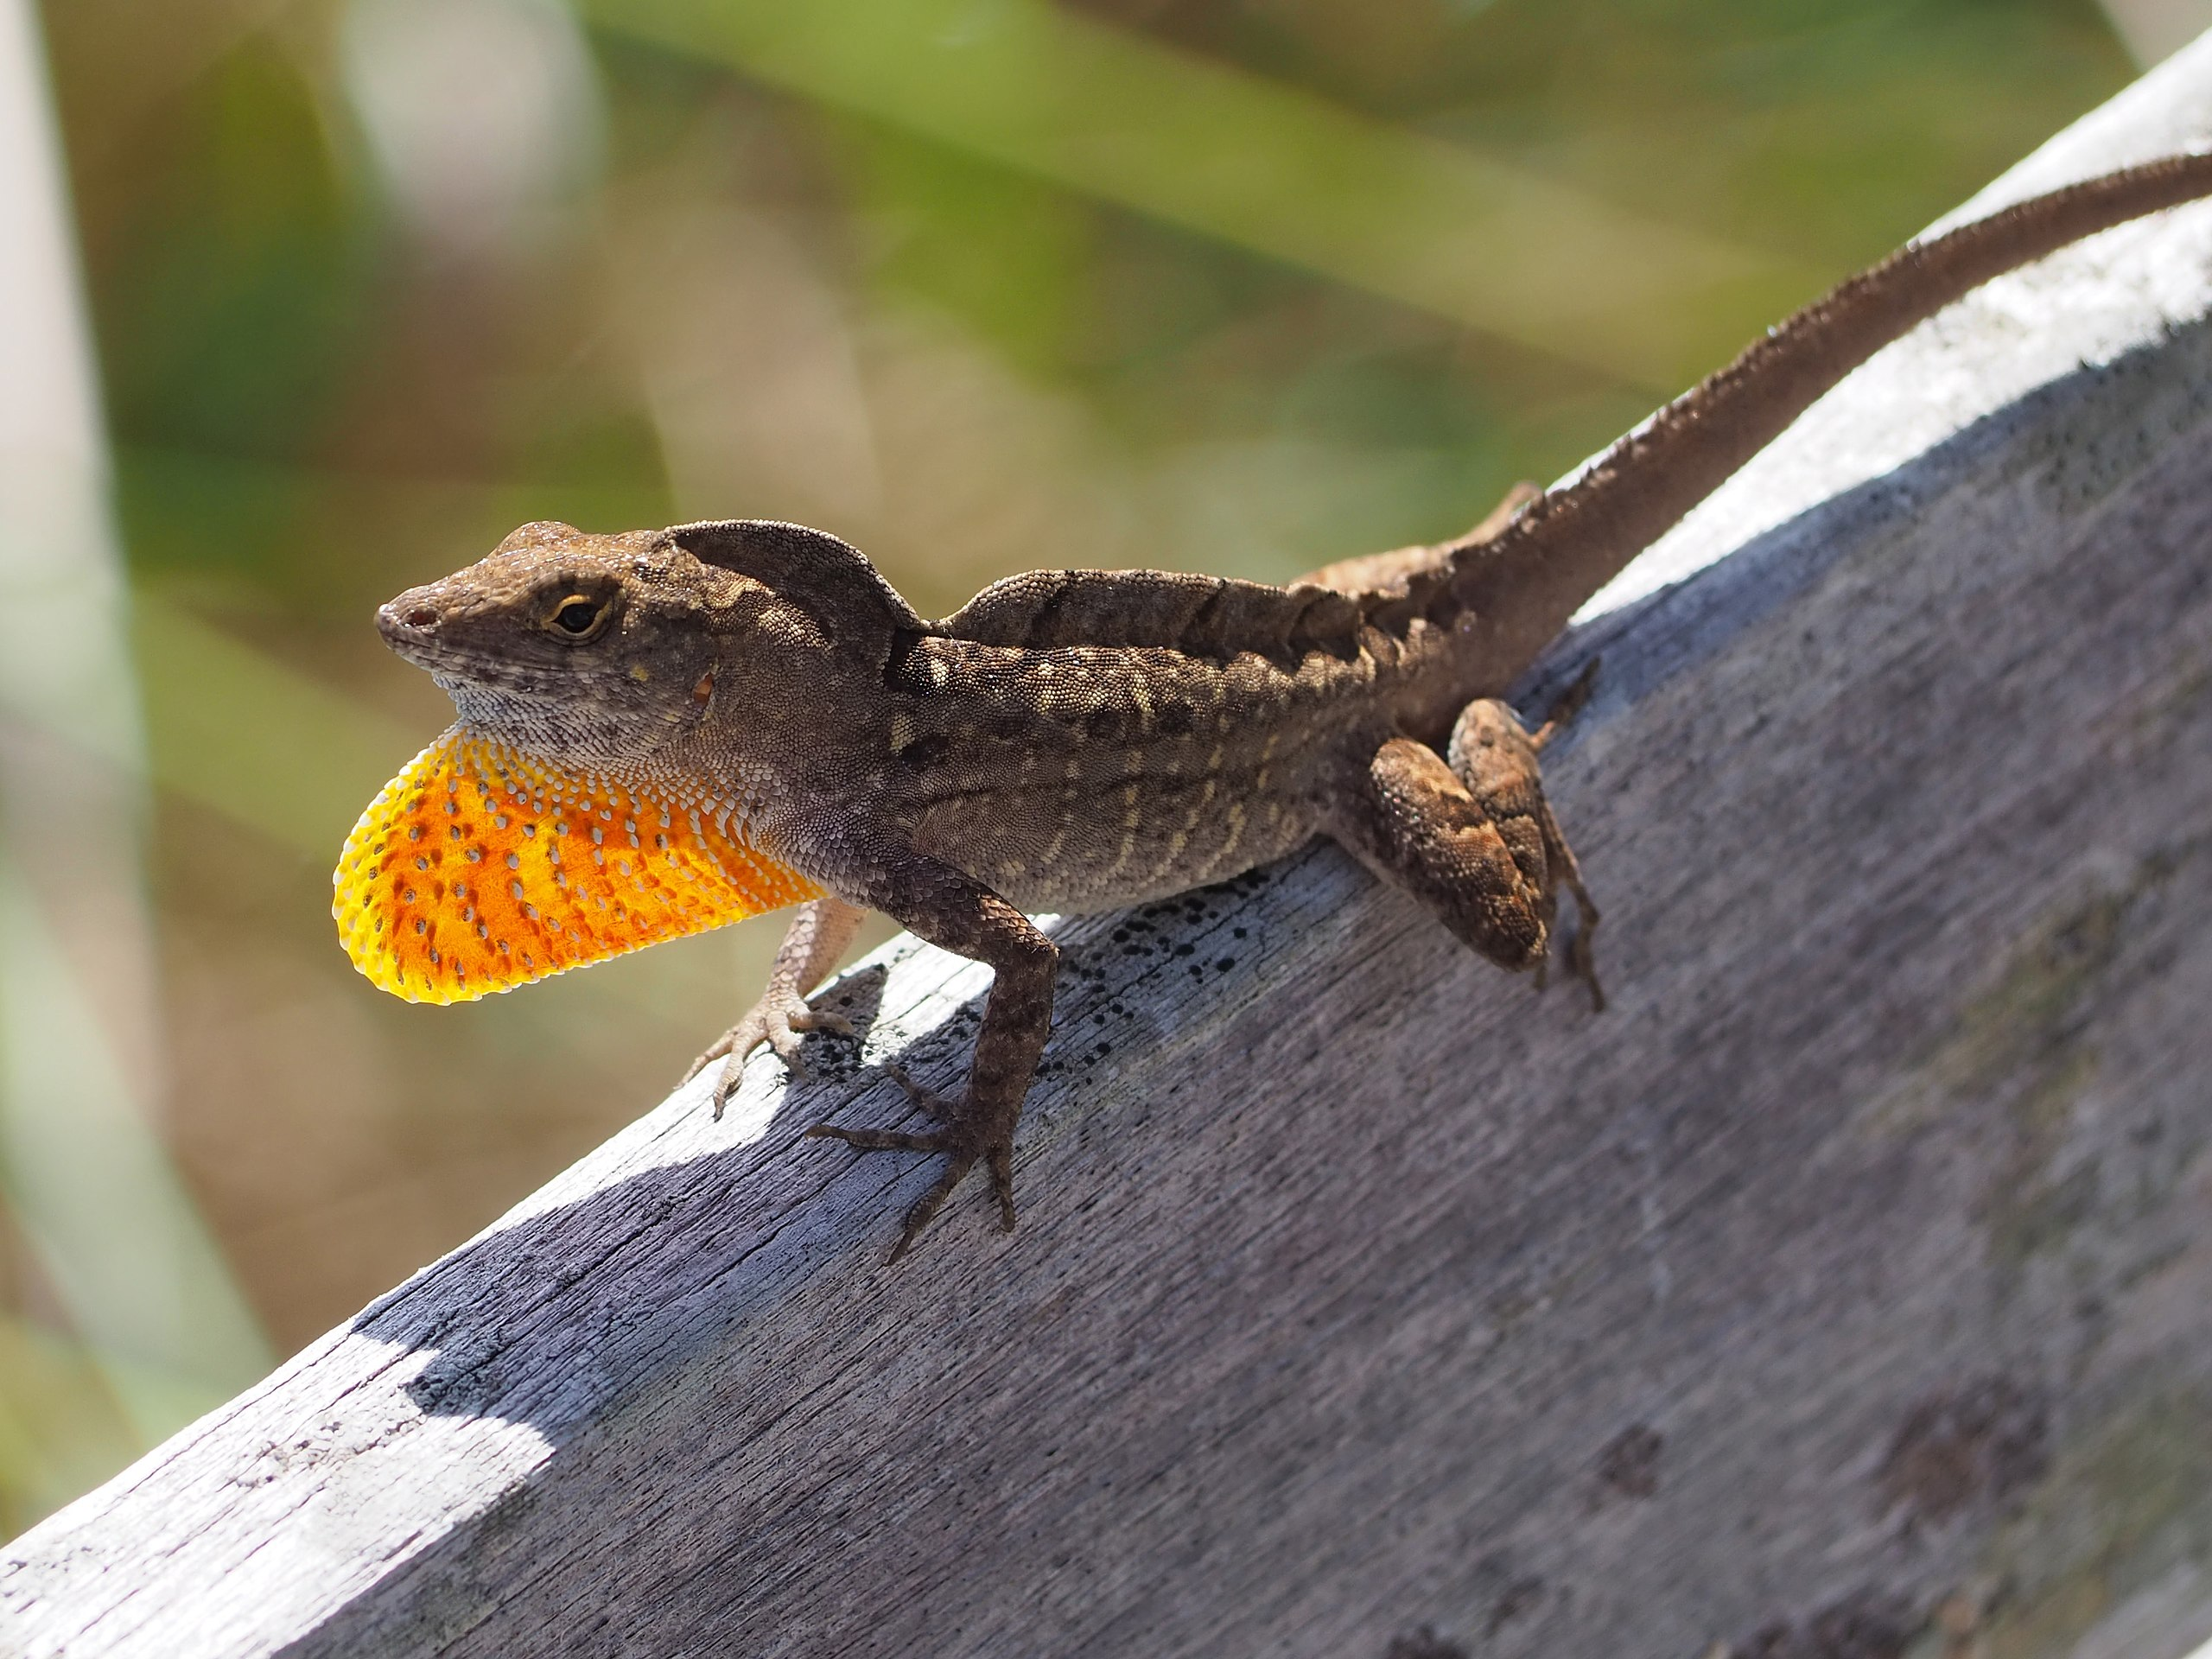 A photo of a brown lizard sitting on a log in the sun with his neck flared out in red.